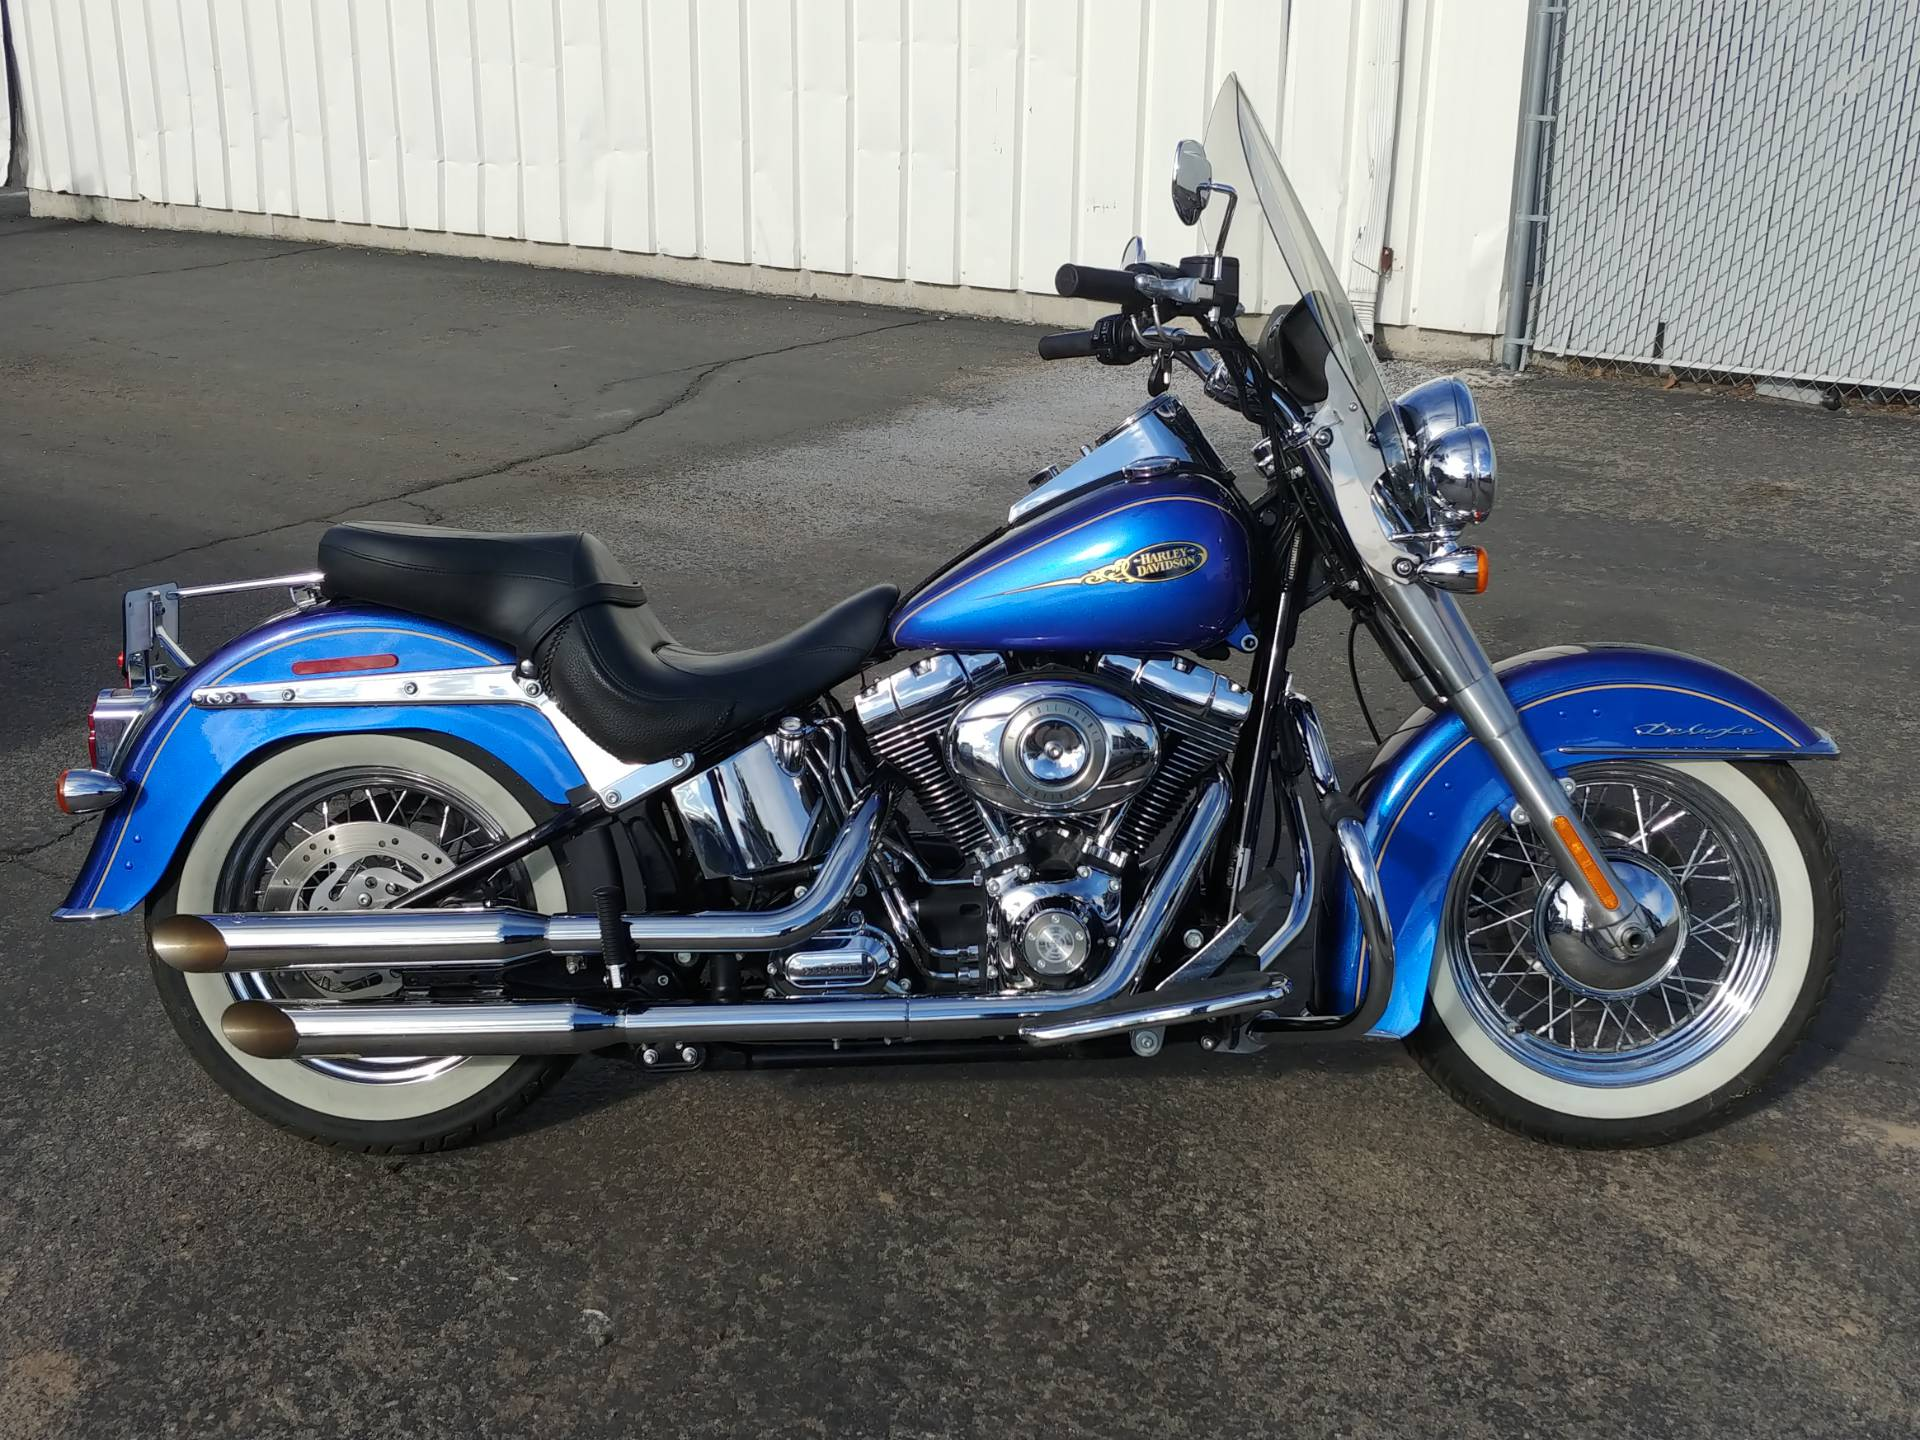 2009 Harley-Davidson Softail Deluxe for sale 9389